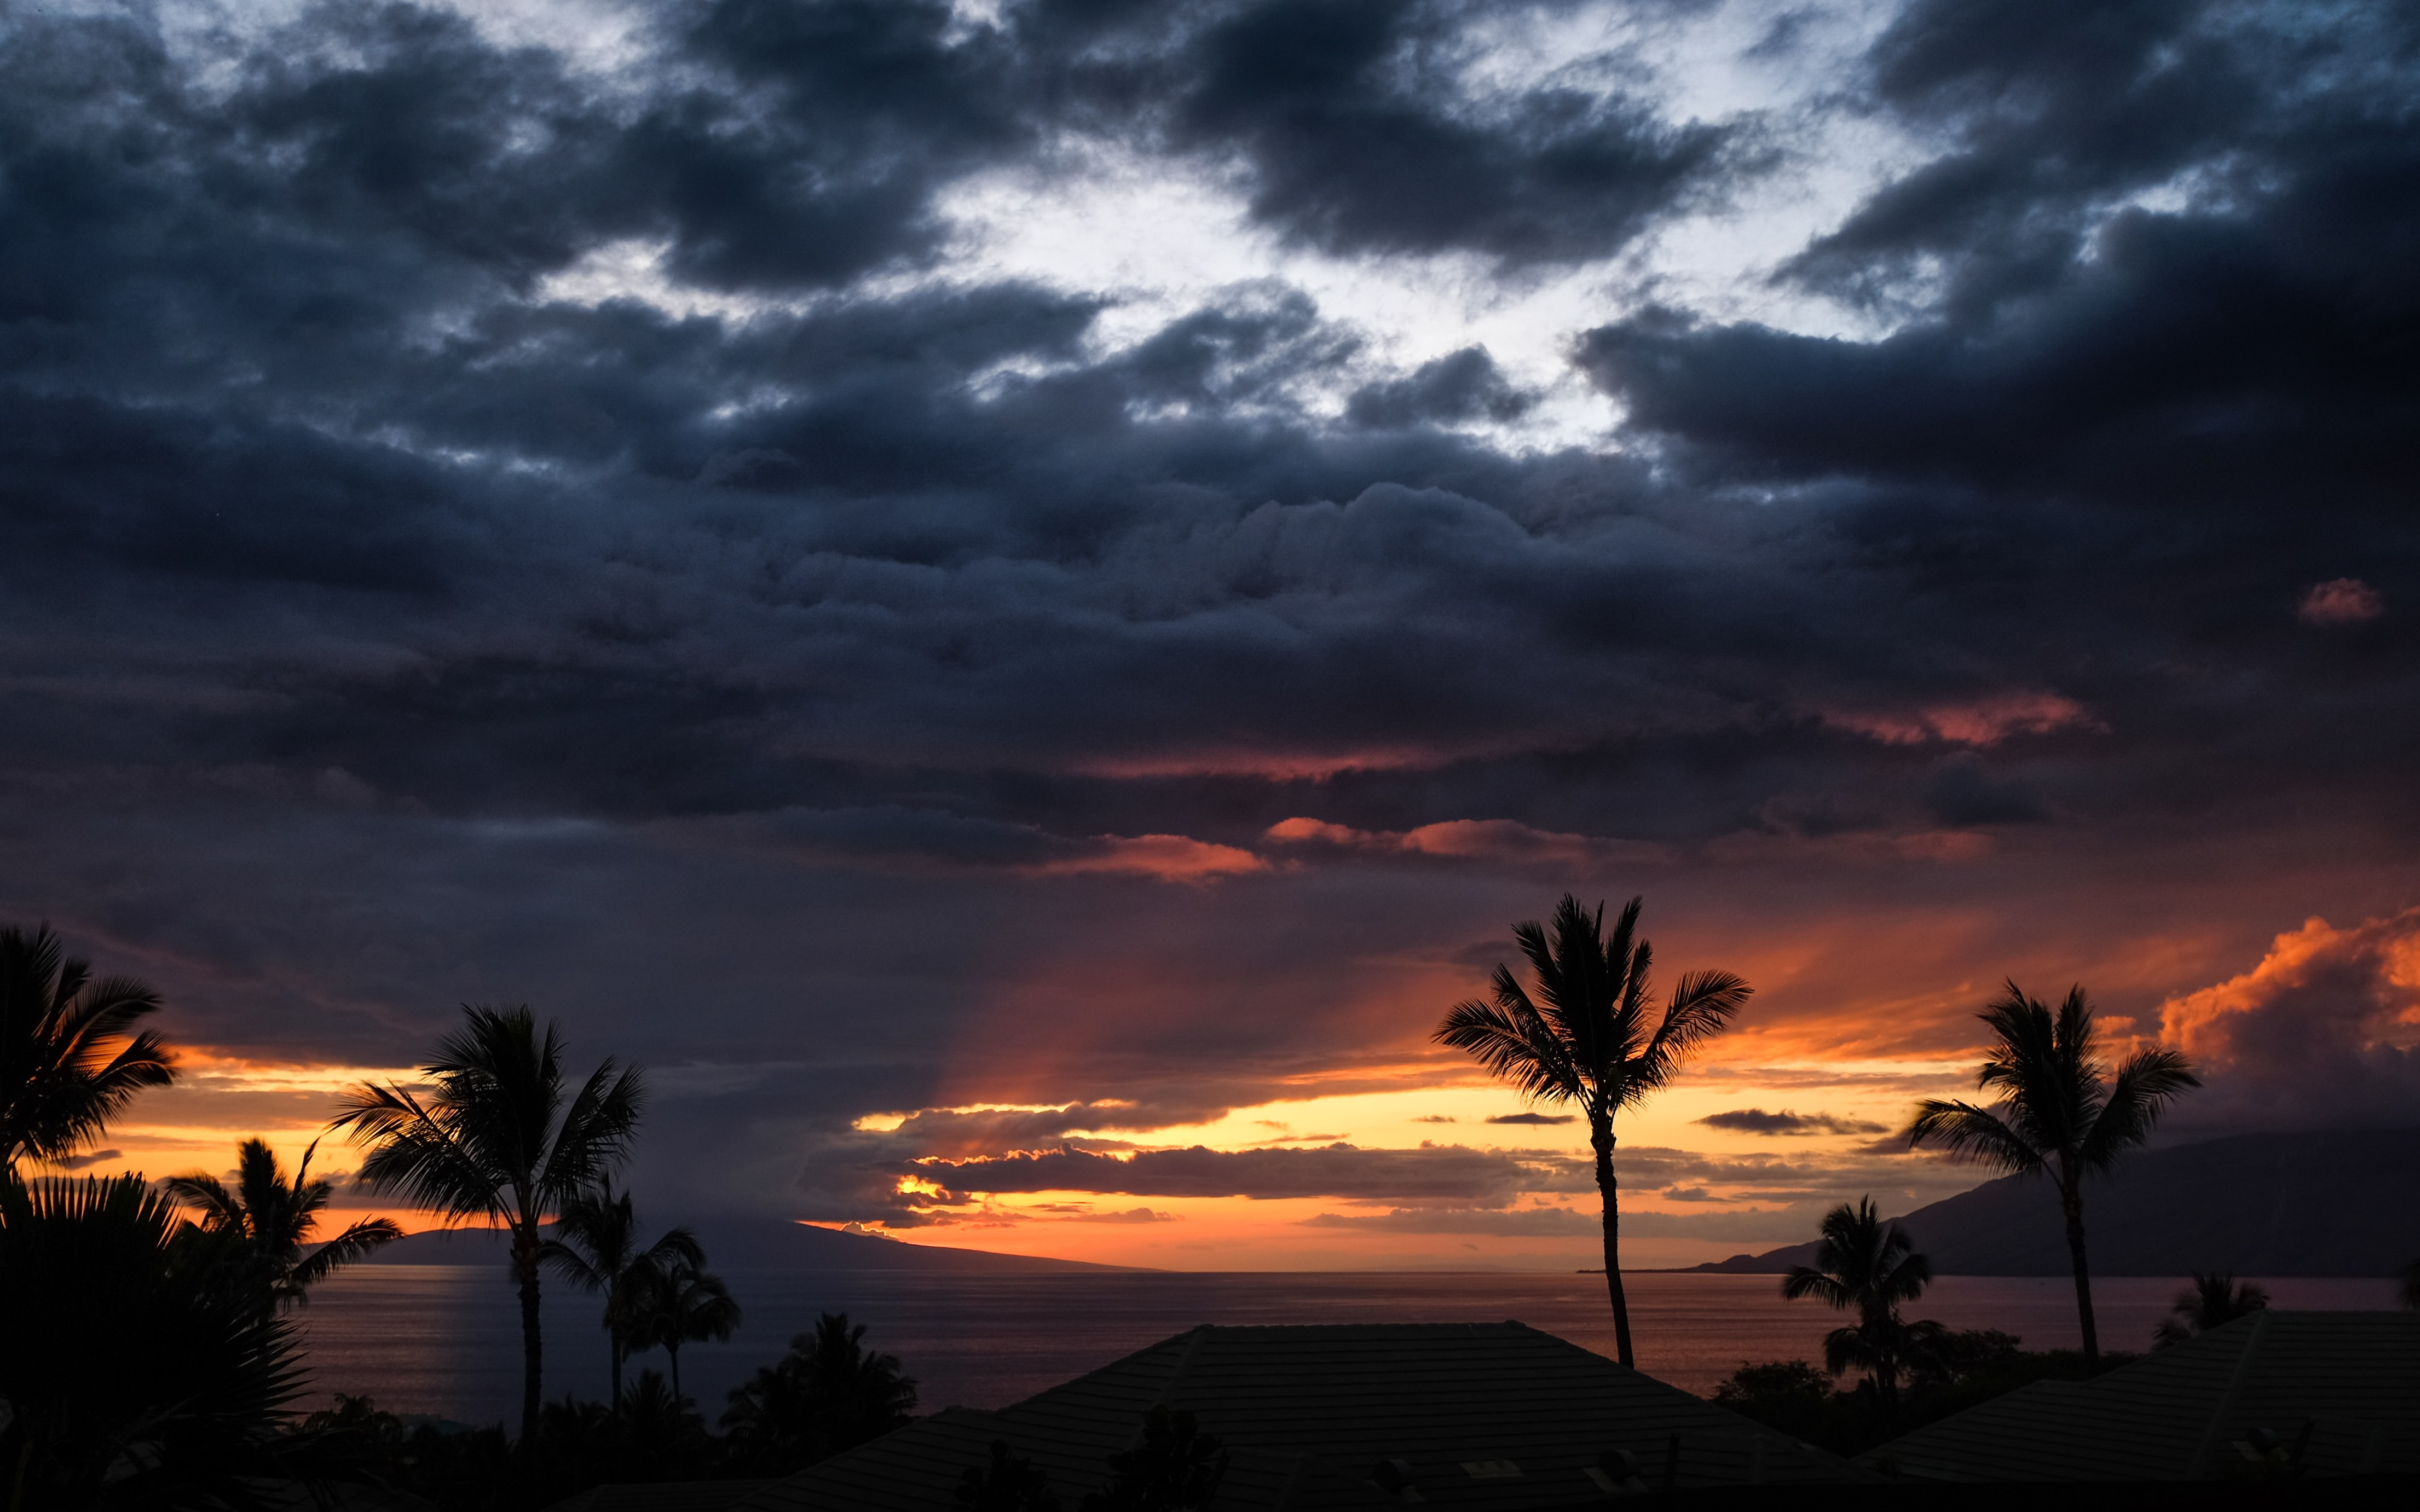 A cloudy sunset over silhouetted palm trees and hills at Wailea-Makena